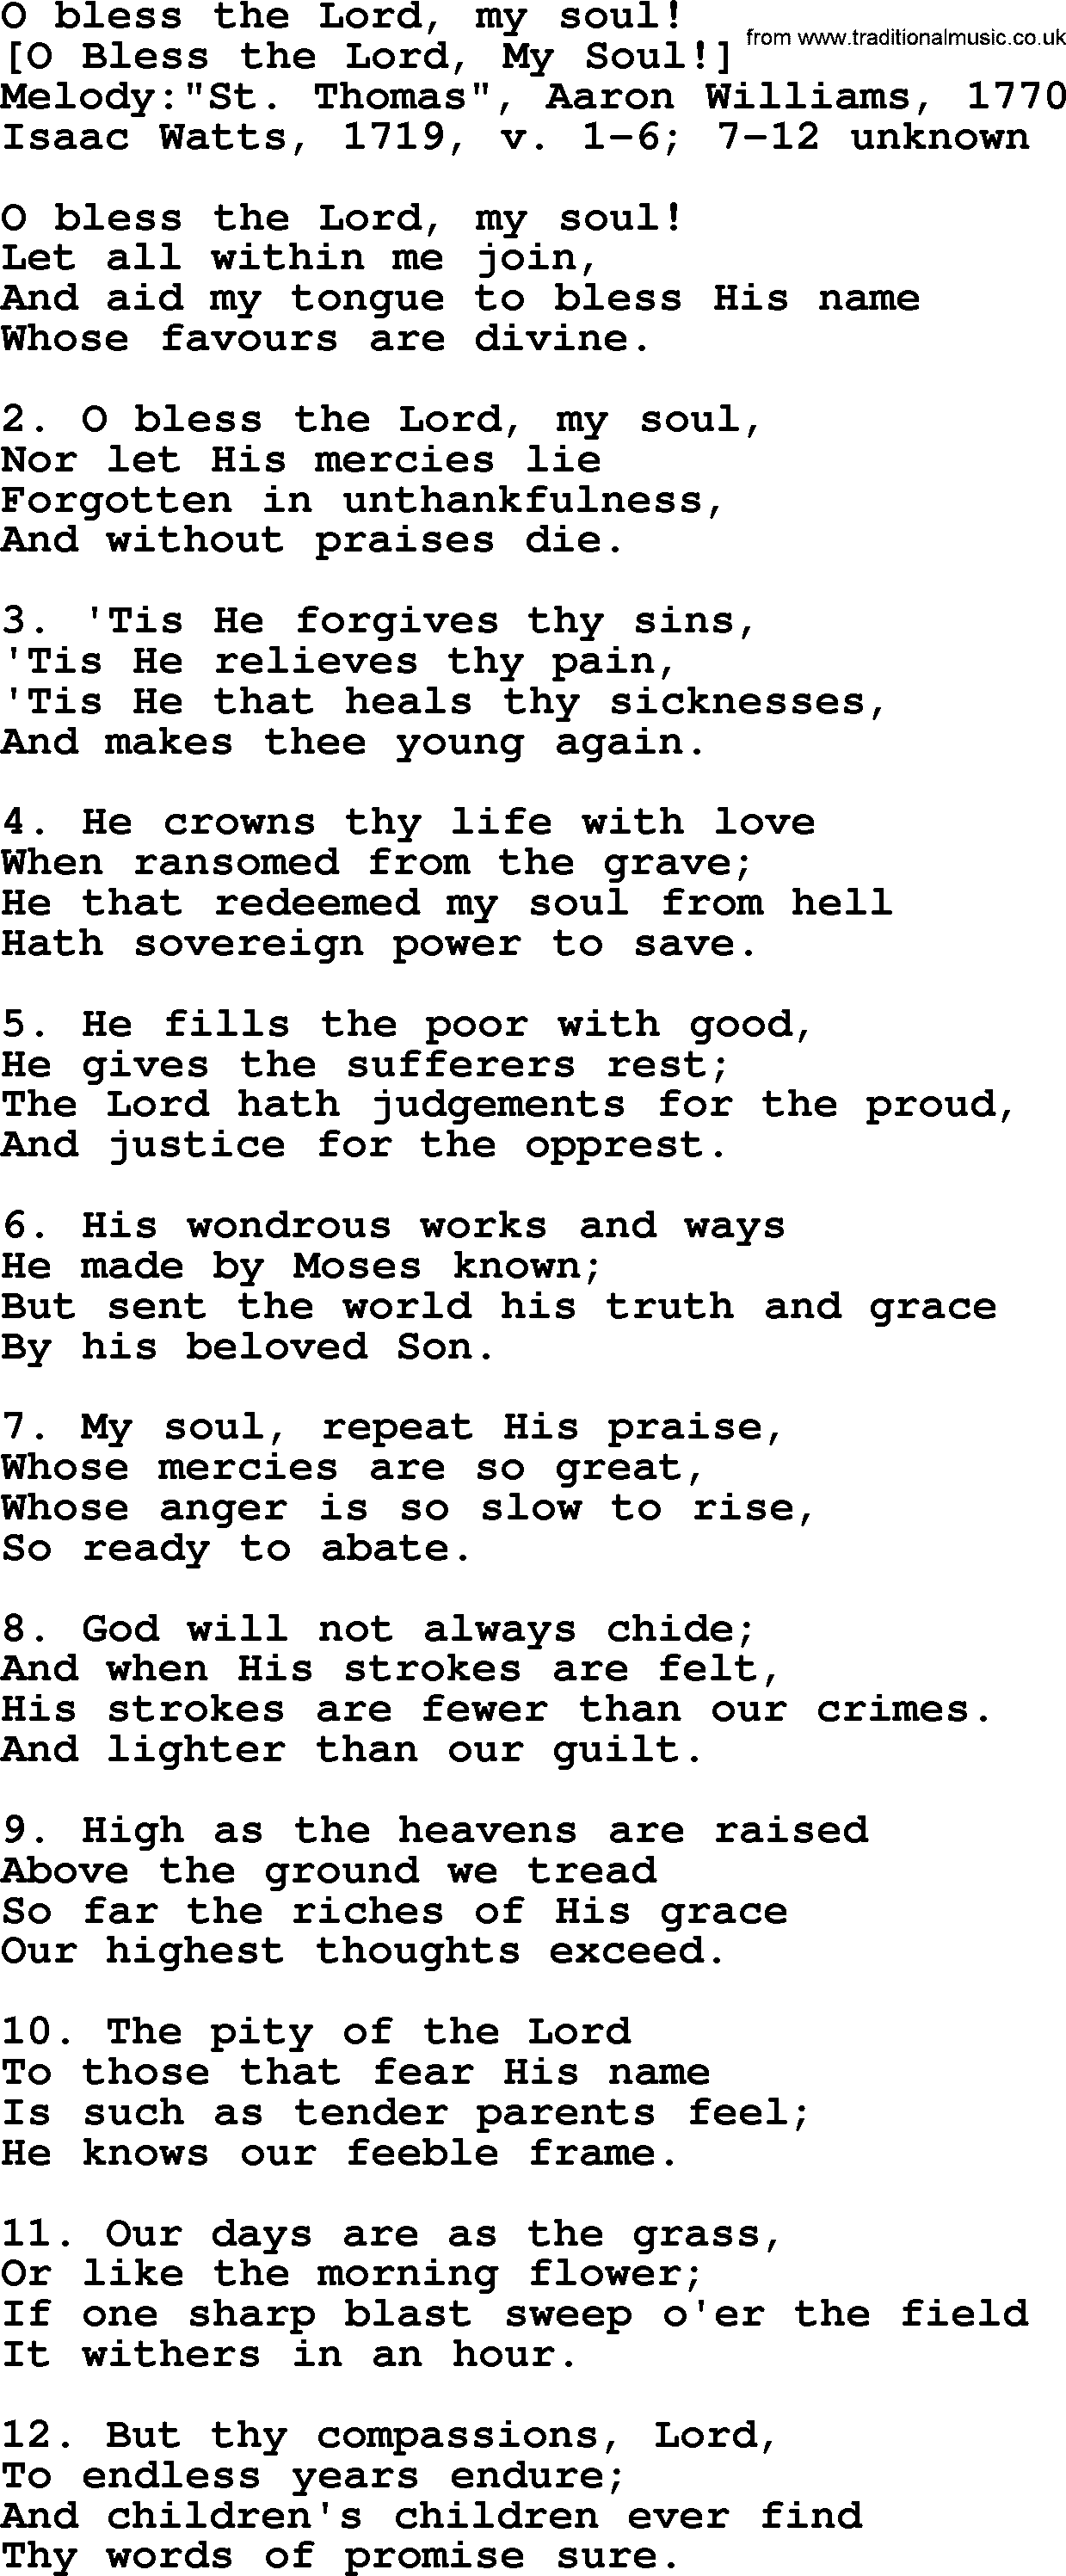 Old English Song Lyrics for O Bless The Lord, My Soul!, with PDF